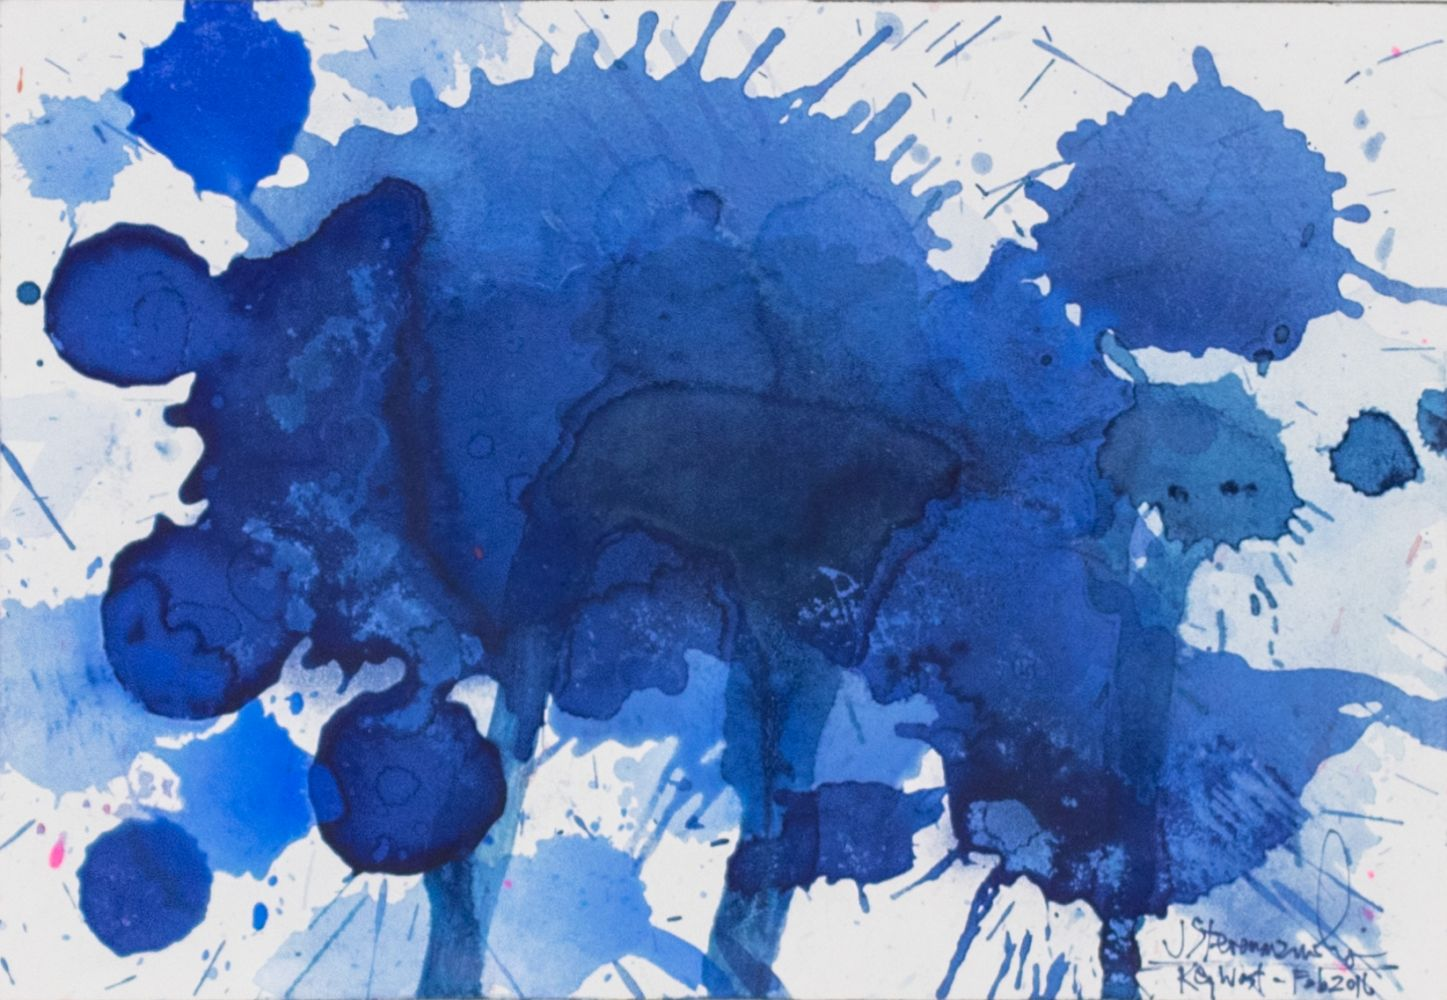 J. Steven Manolis, Splash (Key West), 07.10.08, Watercolor, Acrylic and Gouache on Arches paper, 2016, 7 x 10 inches, Abstract expressionism paintings for sale at Manolis Projects Art Gallery, Miami, Fl